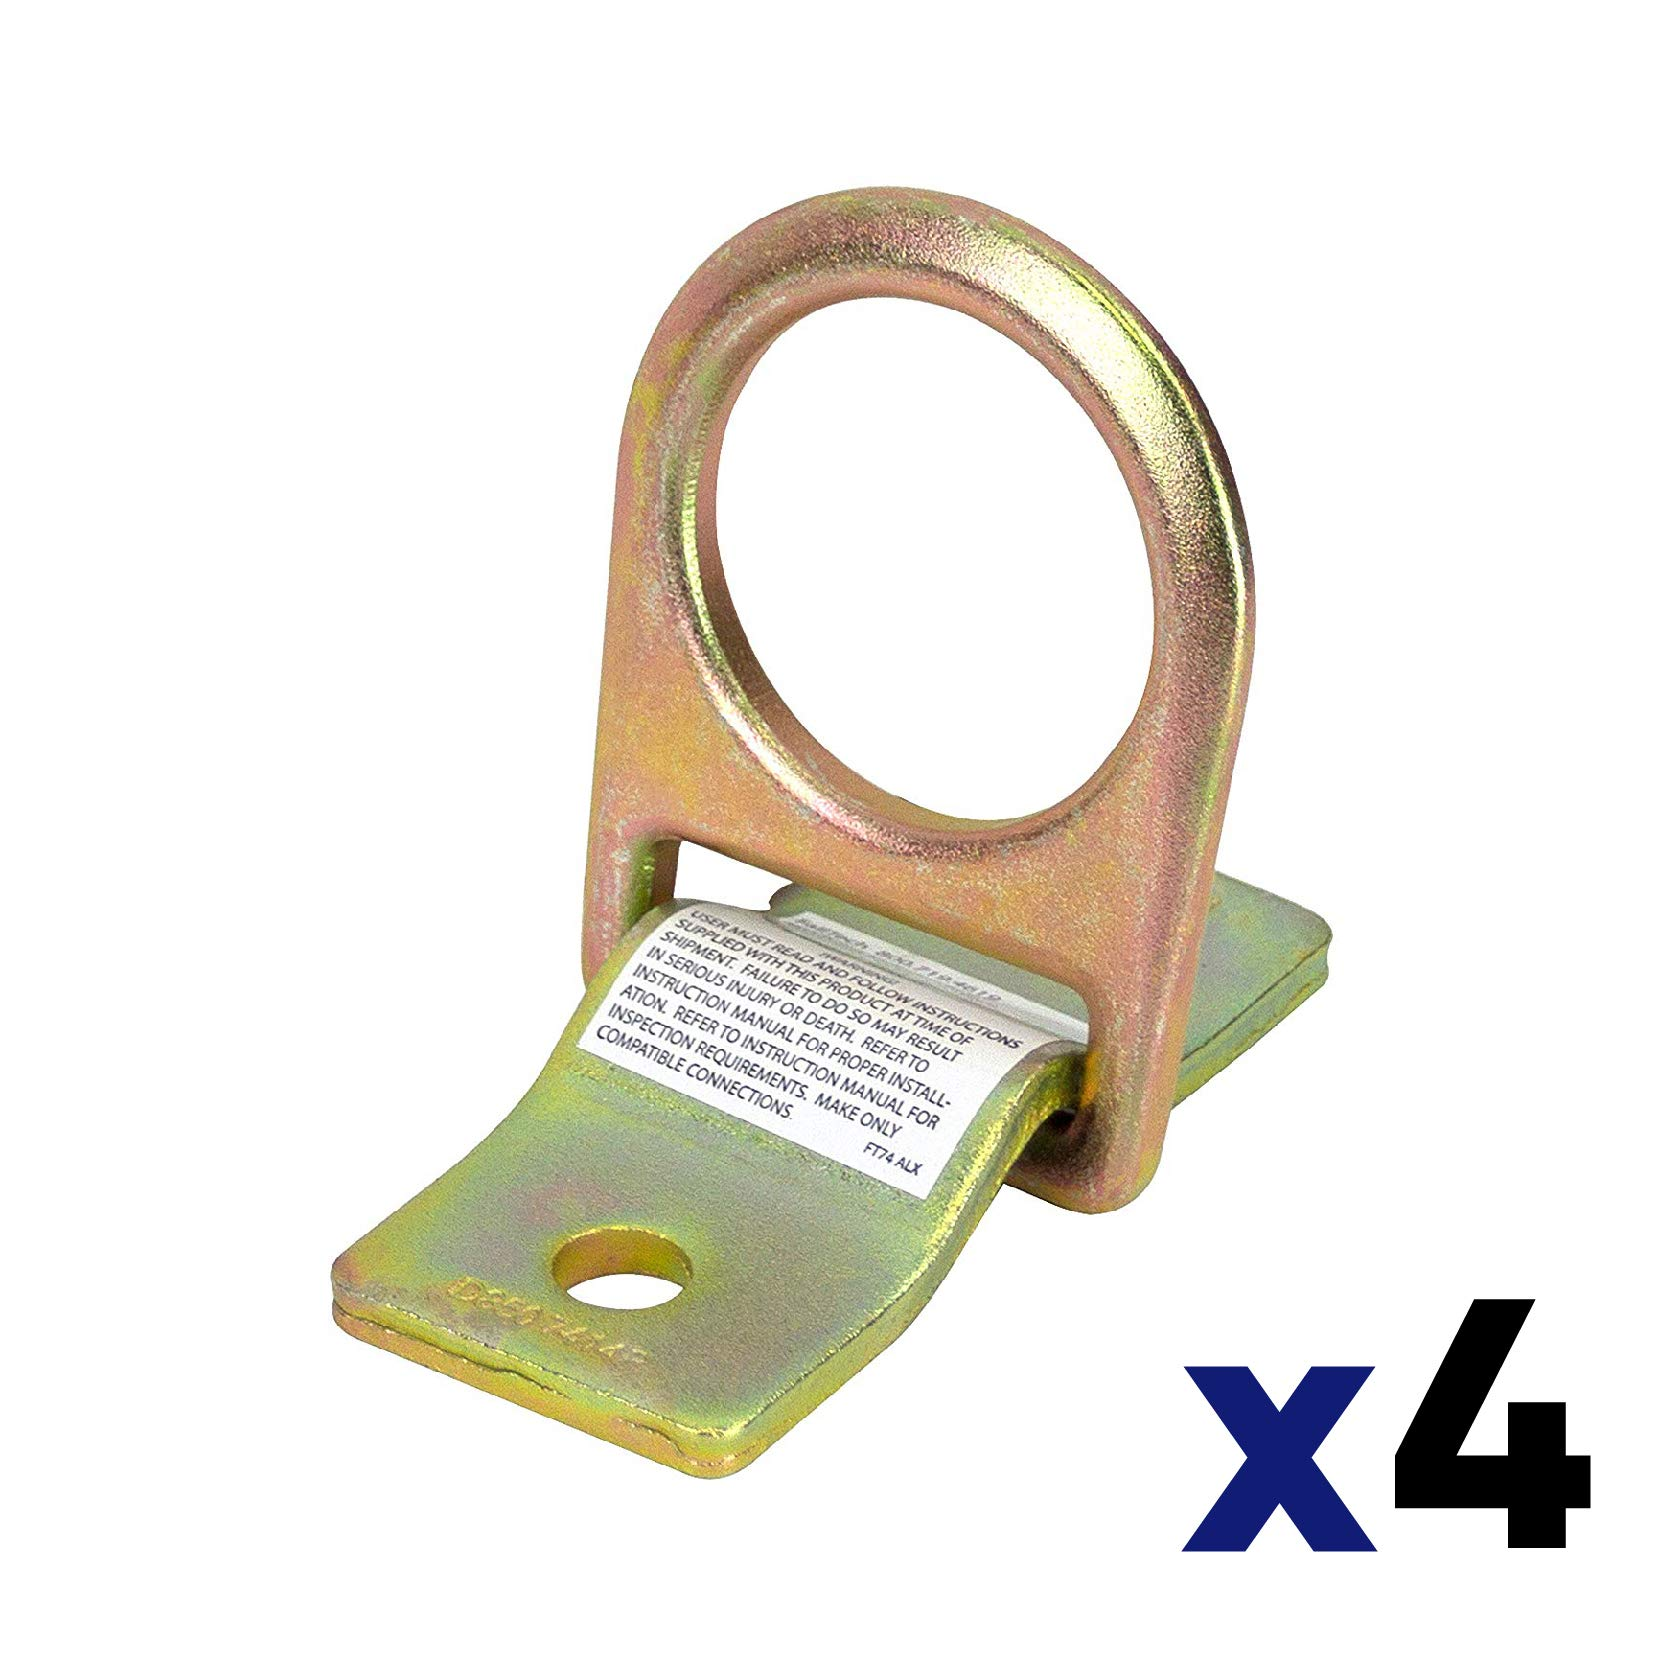 FallTech 7414 Bolt-On D-Ring Anchorage (4 pack) by FallTech